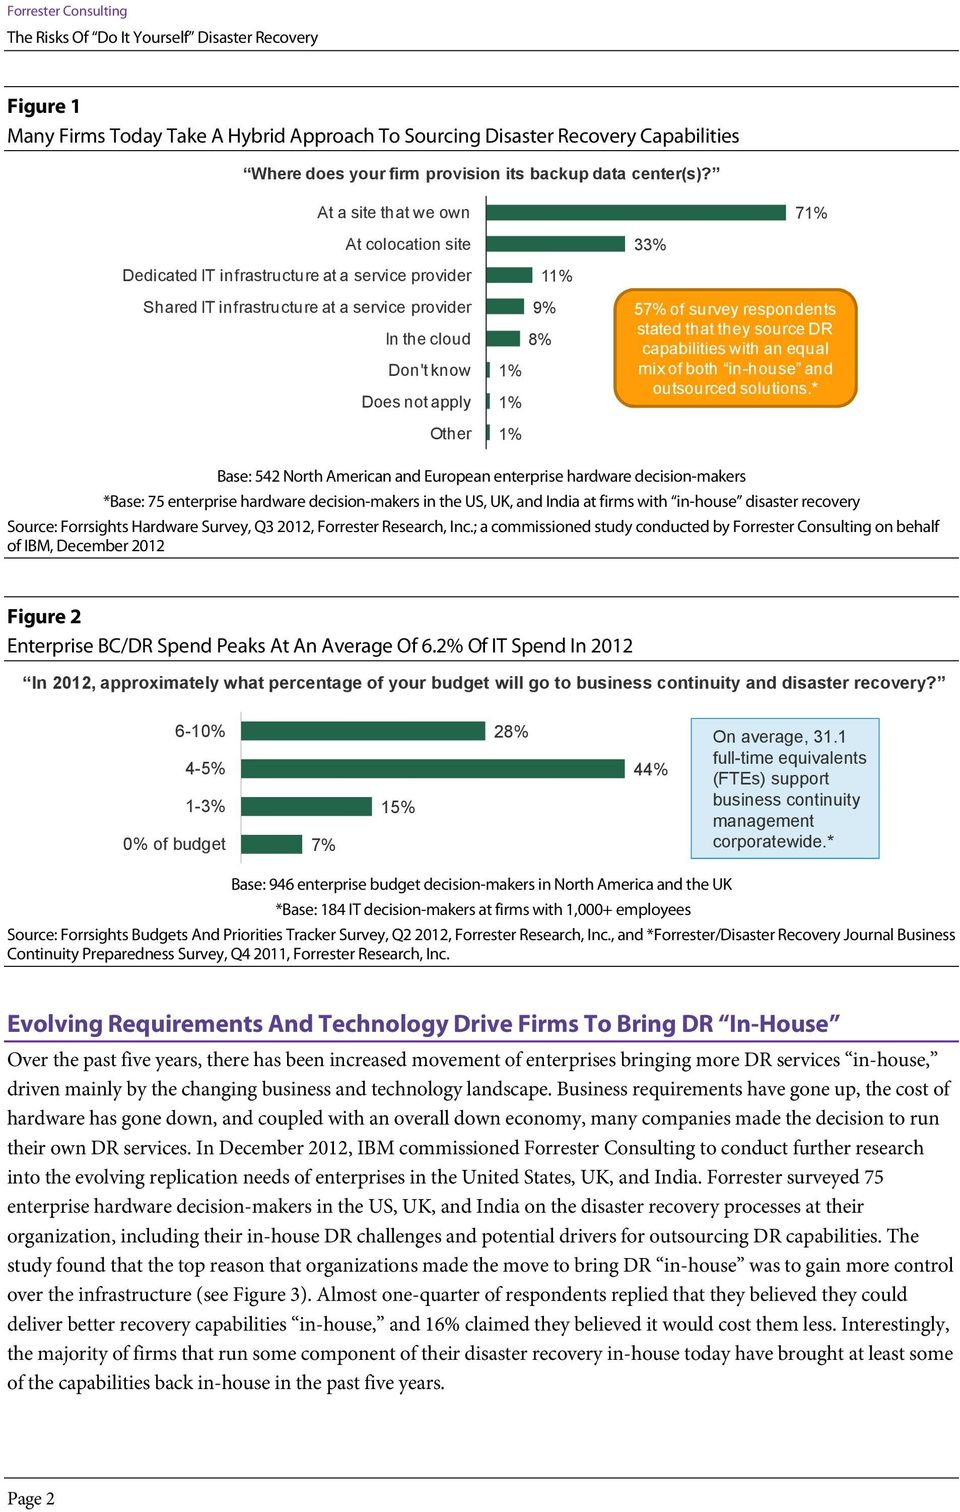 survey respondents stated that they source DR capabilities with an equal mix of both in-house and outsourced solutions.